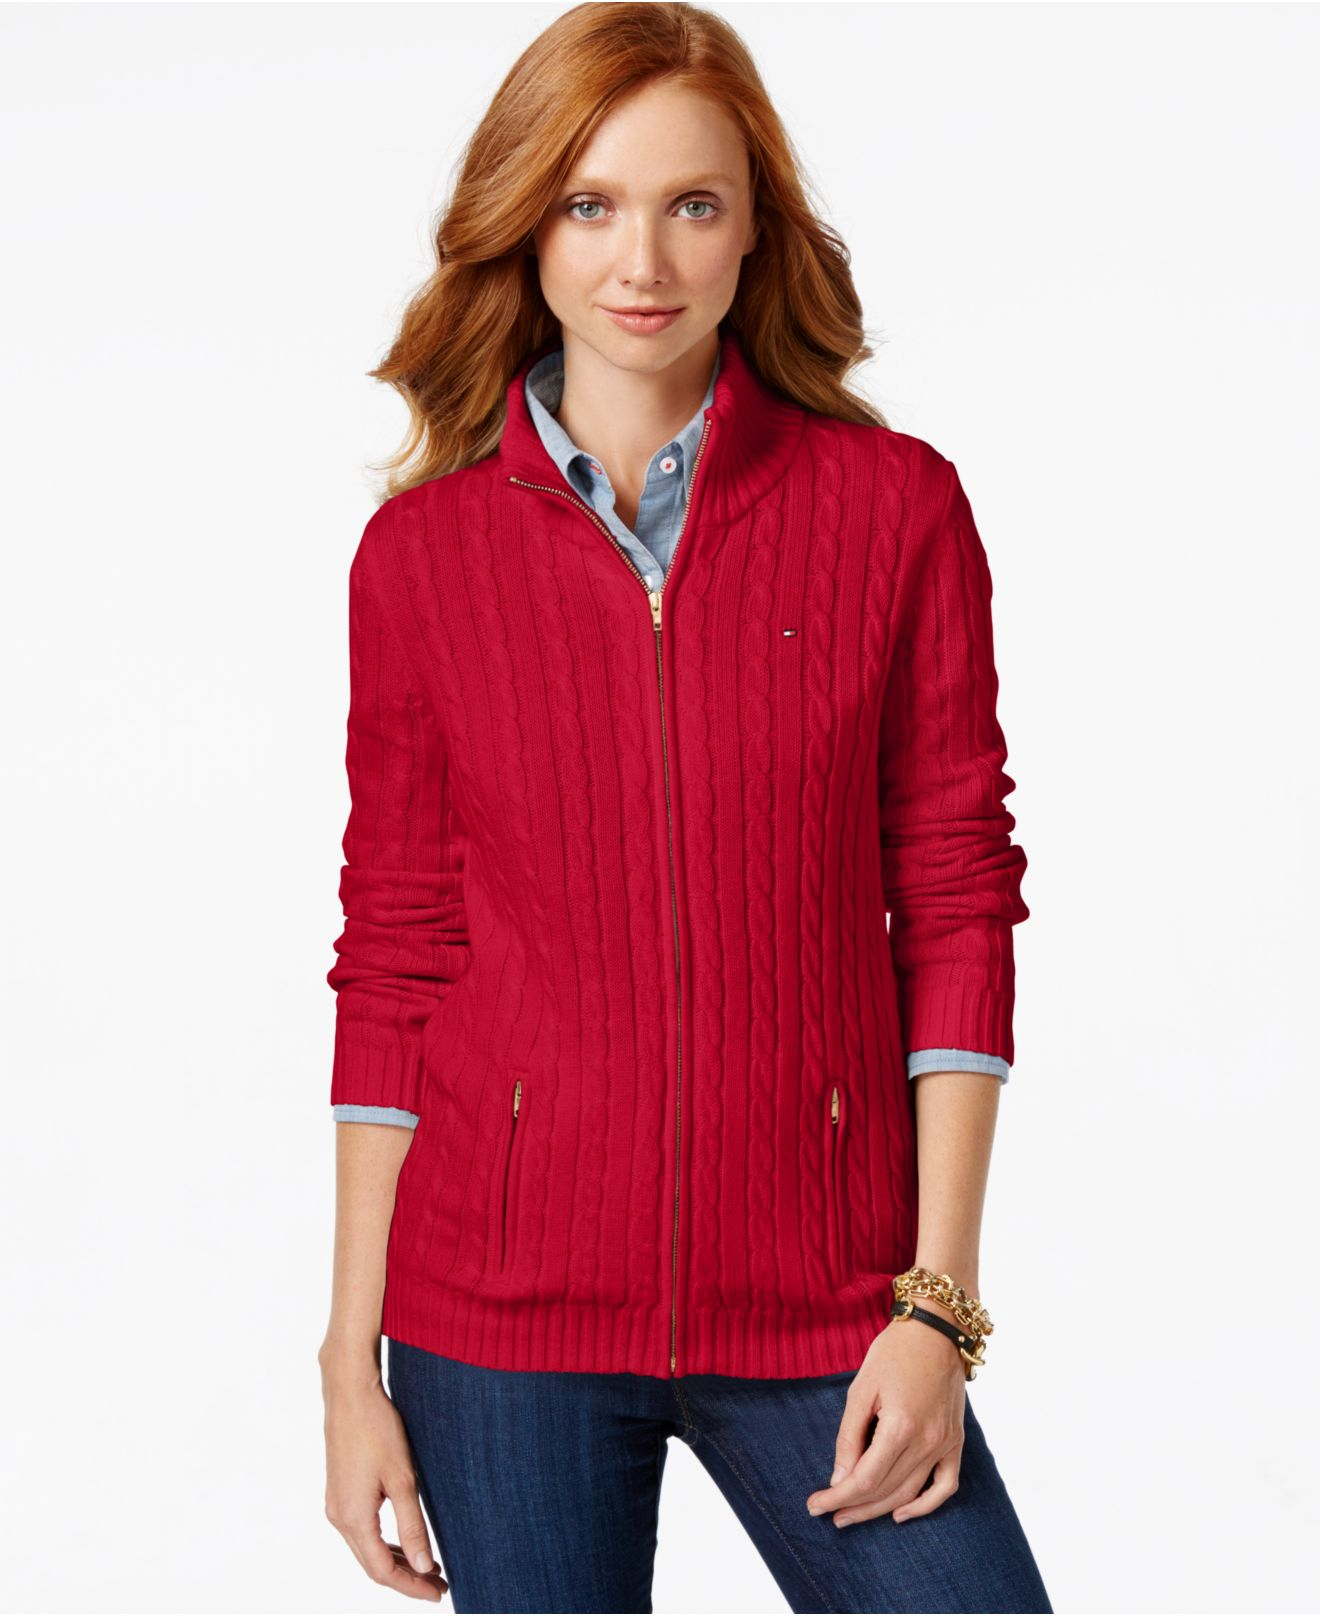 Tommy hilfiger Cable-knit Zip Front Sweater in Red | Lyst